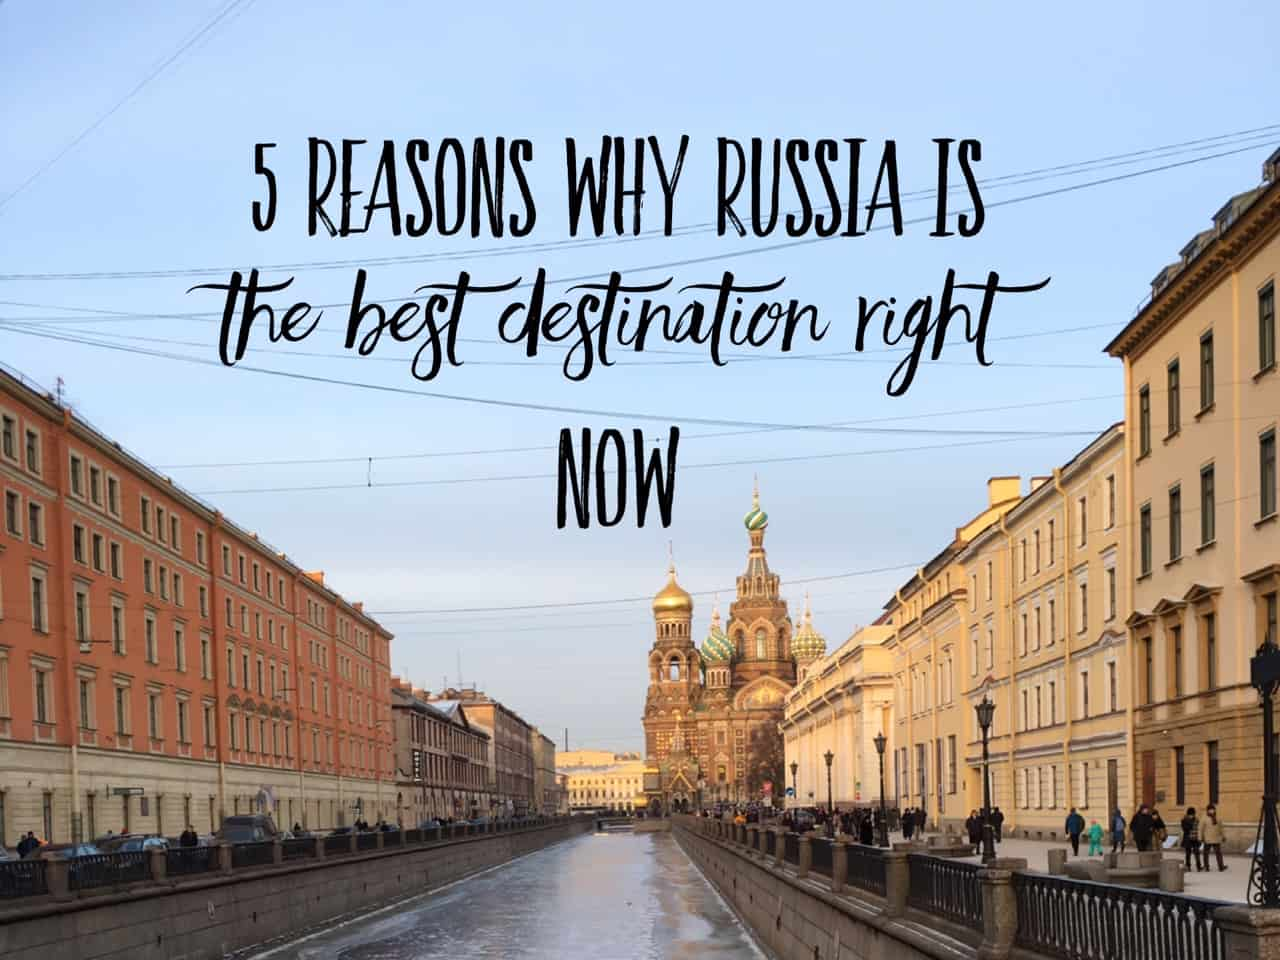 Visit Russia: Reasons why Russia is the best destination right now